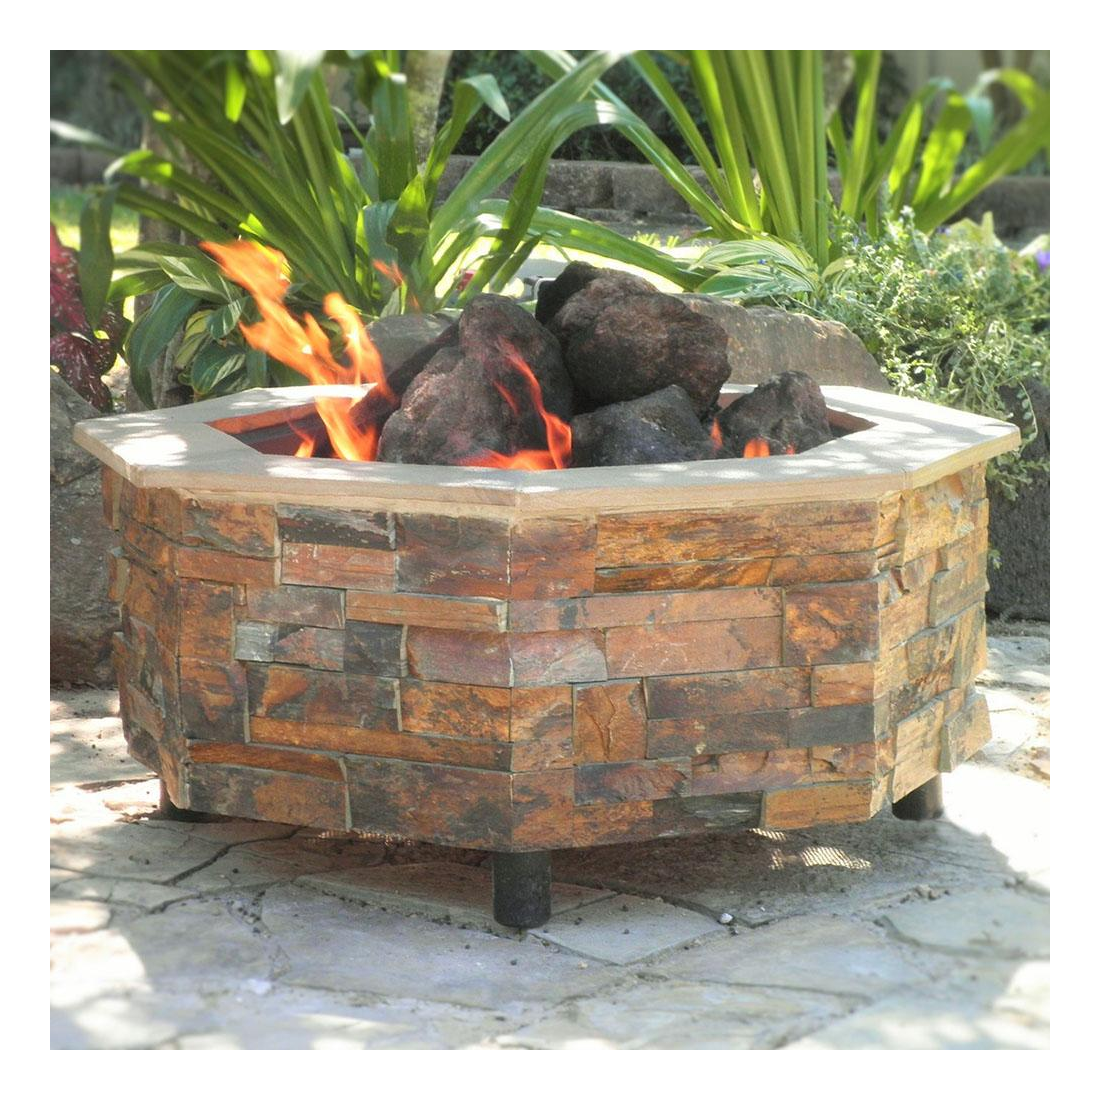 A stone DIY fire pit finished and filled with lava rocks